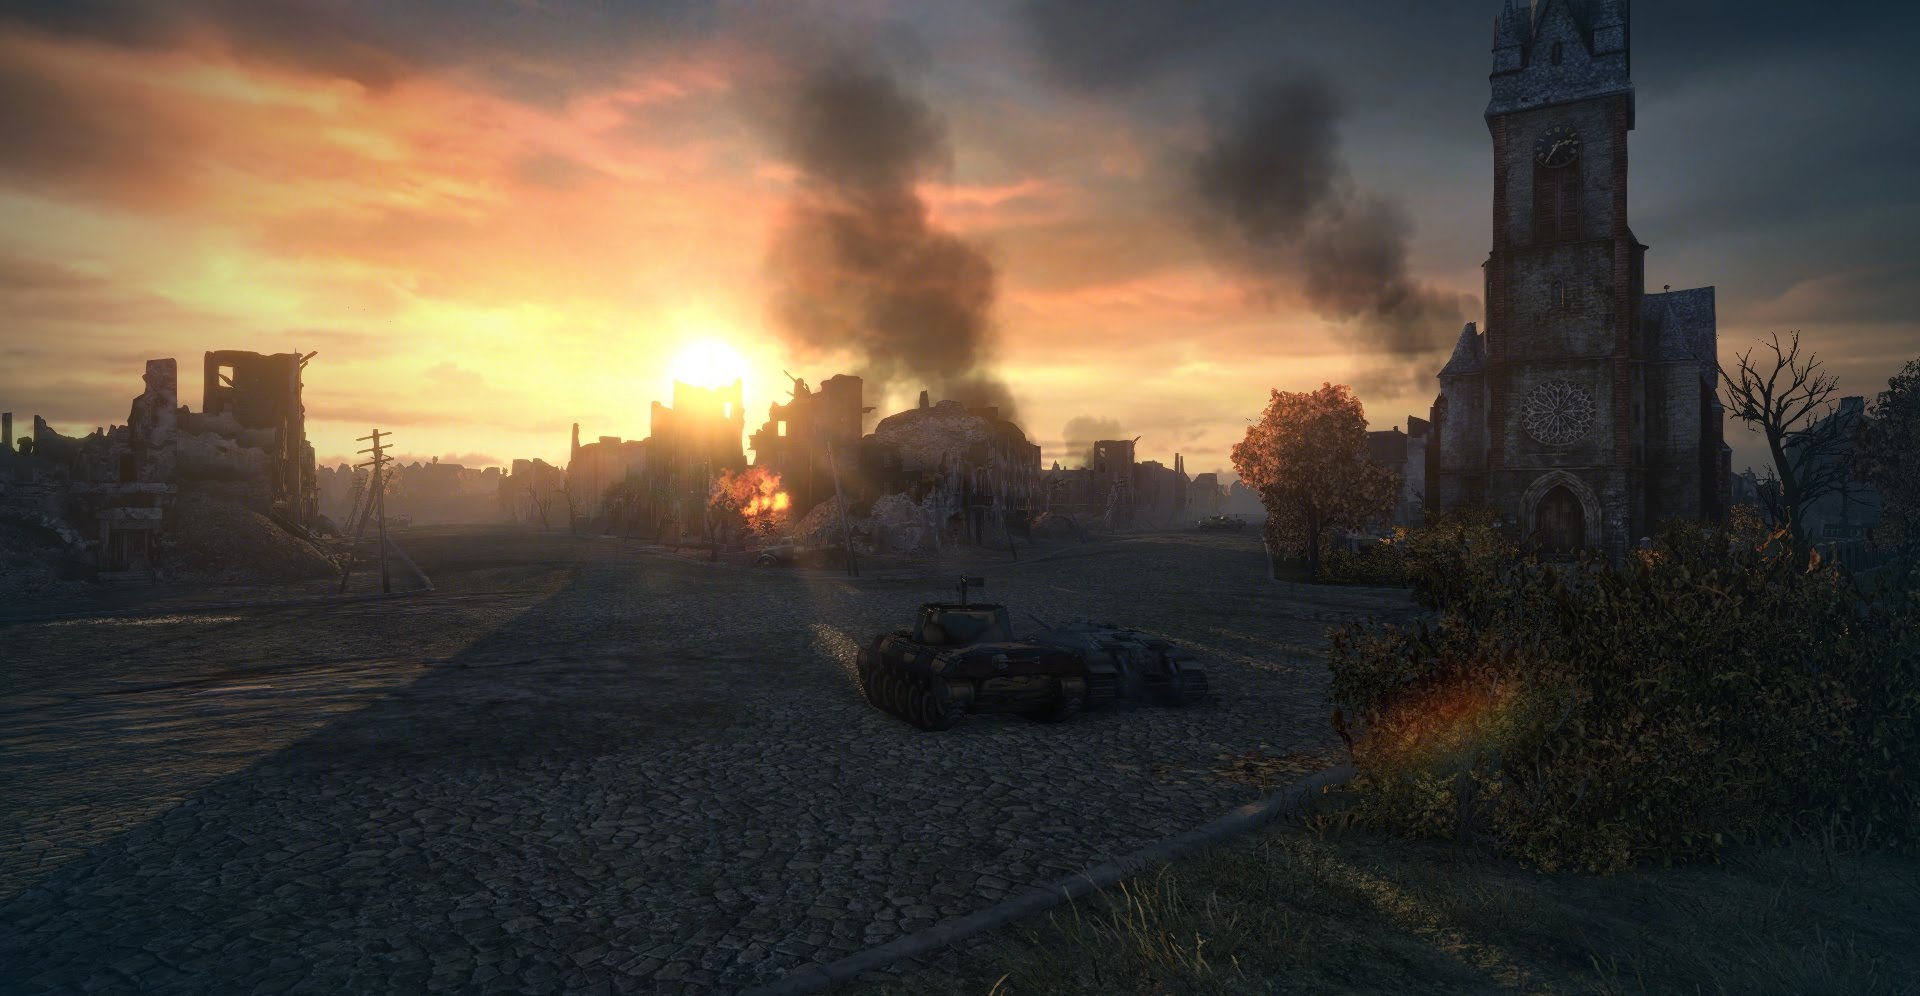 Ruinberg on Fire - Gameplay - World of Tanks official forum